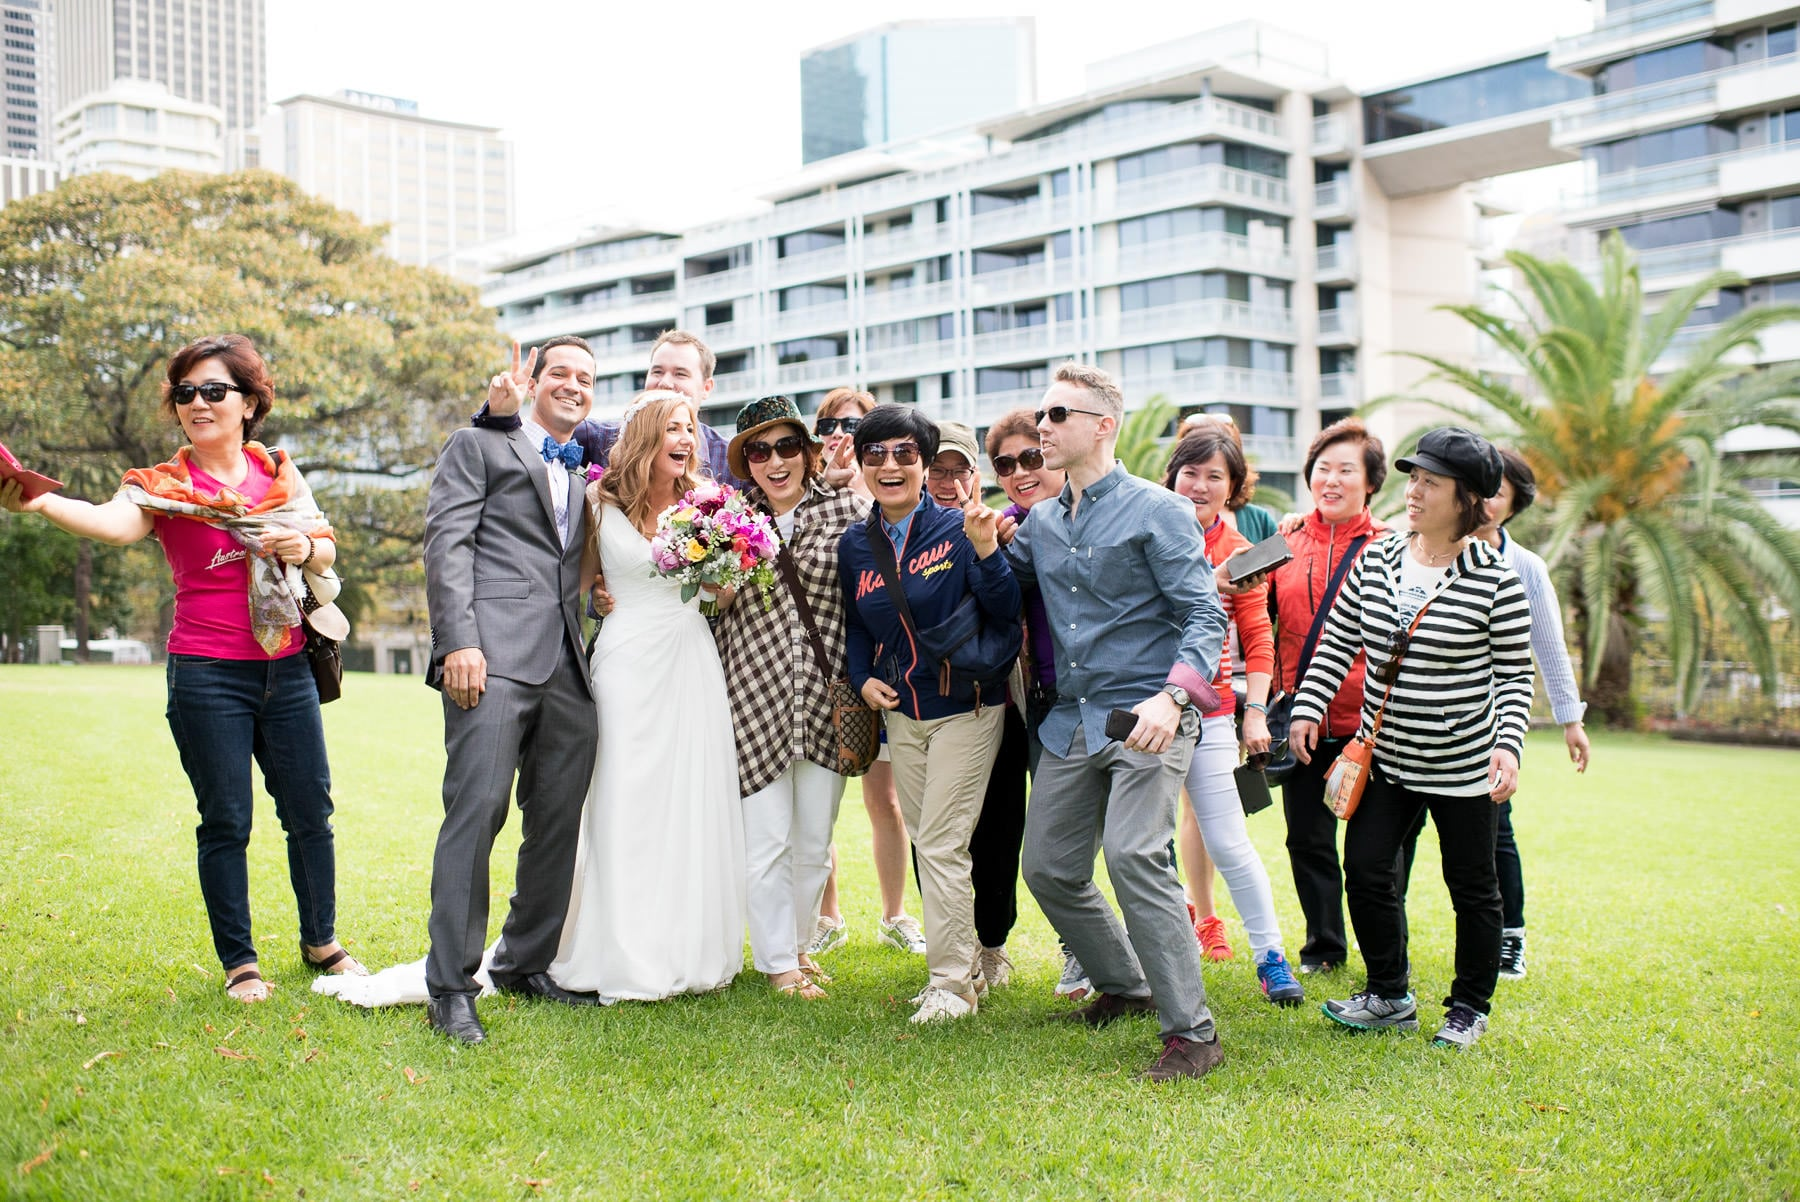 Chinese Tourists wedding photography